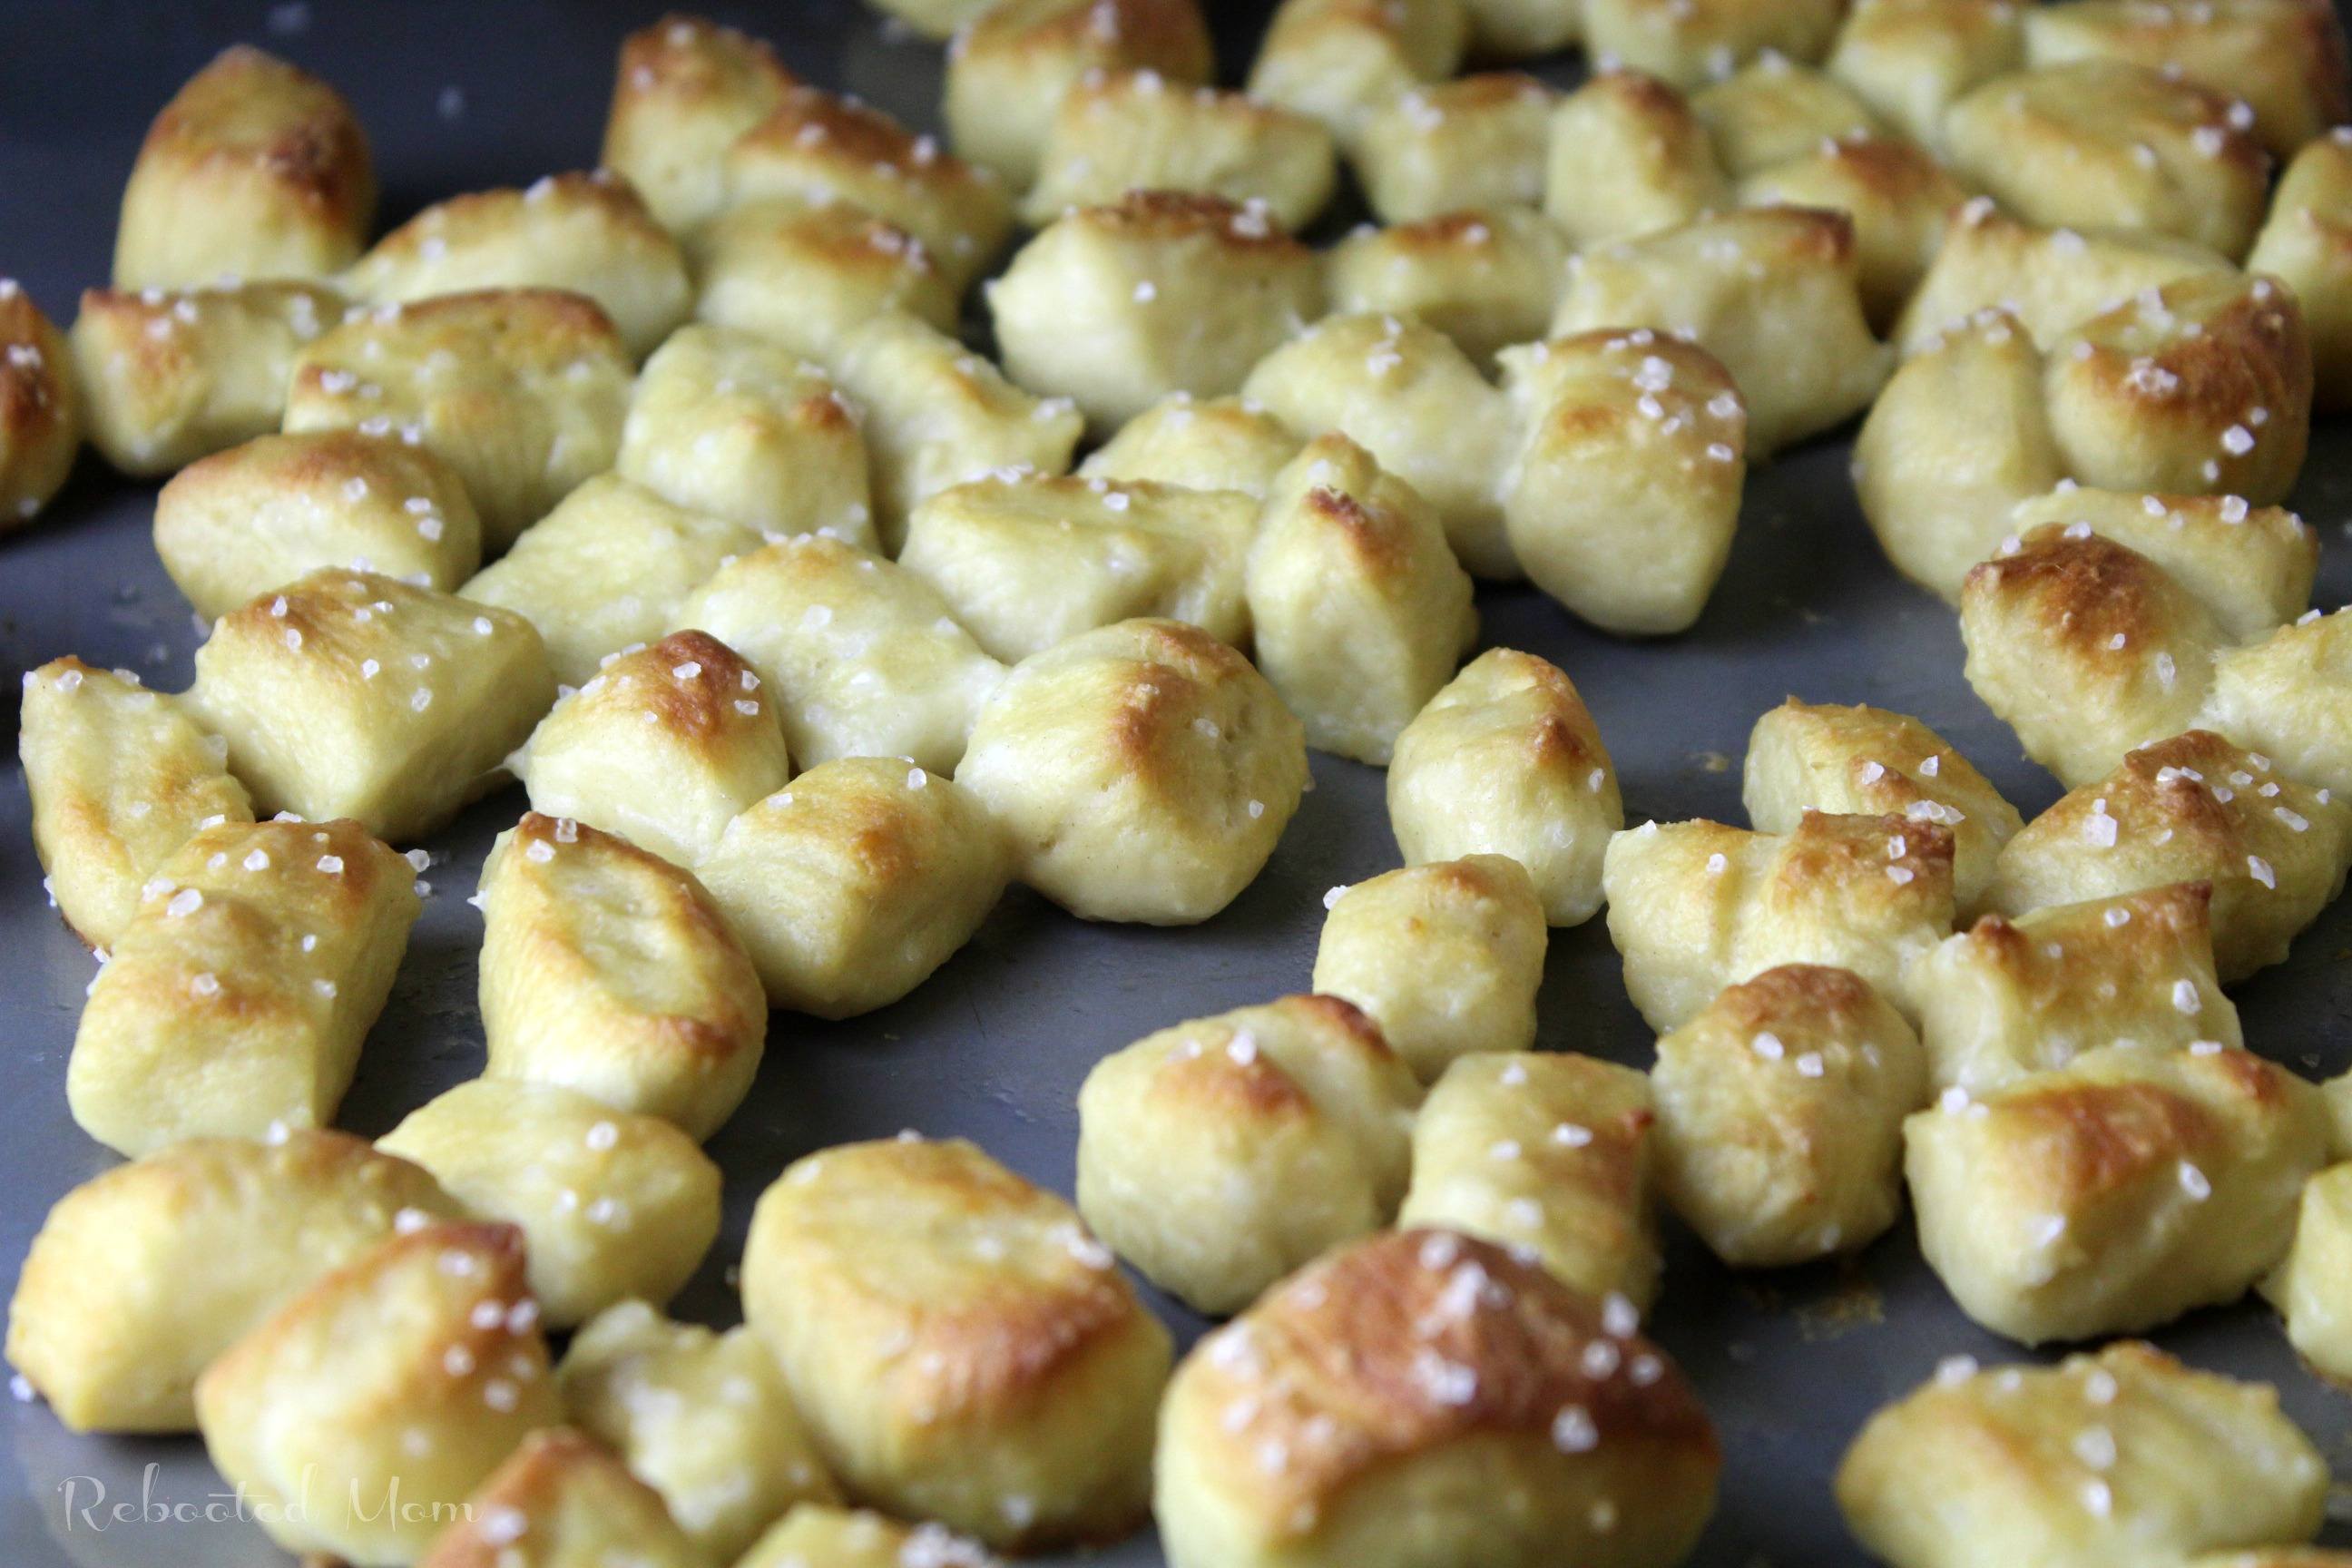 These yummy pretzel bites are simple to whip up and delicious when served as an appetizer or snack. You won't believe how easy they are to make at home!